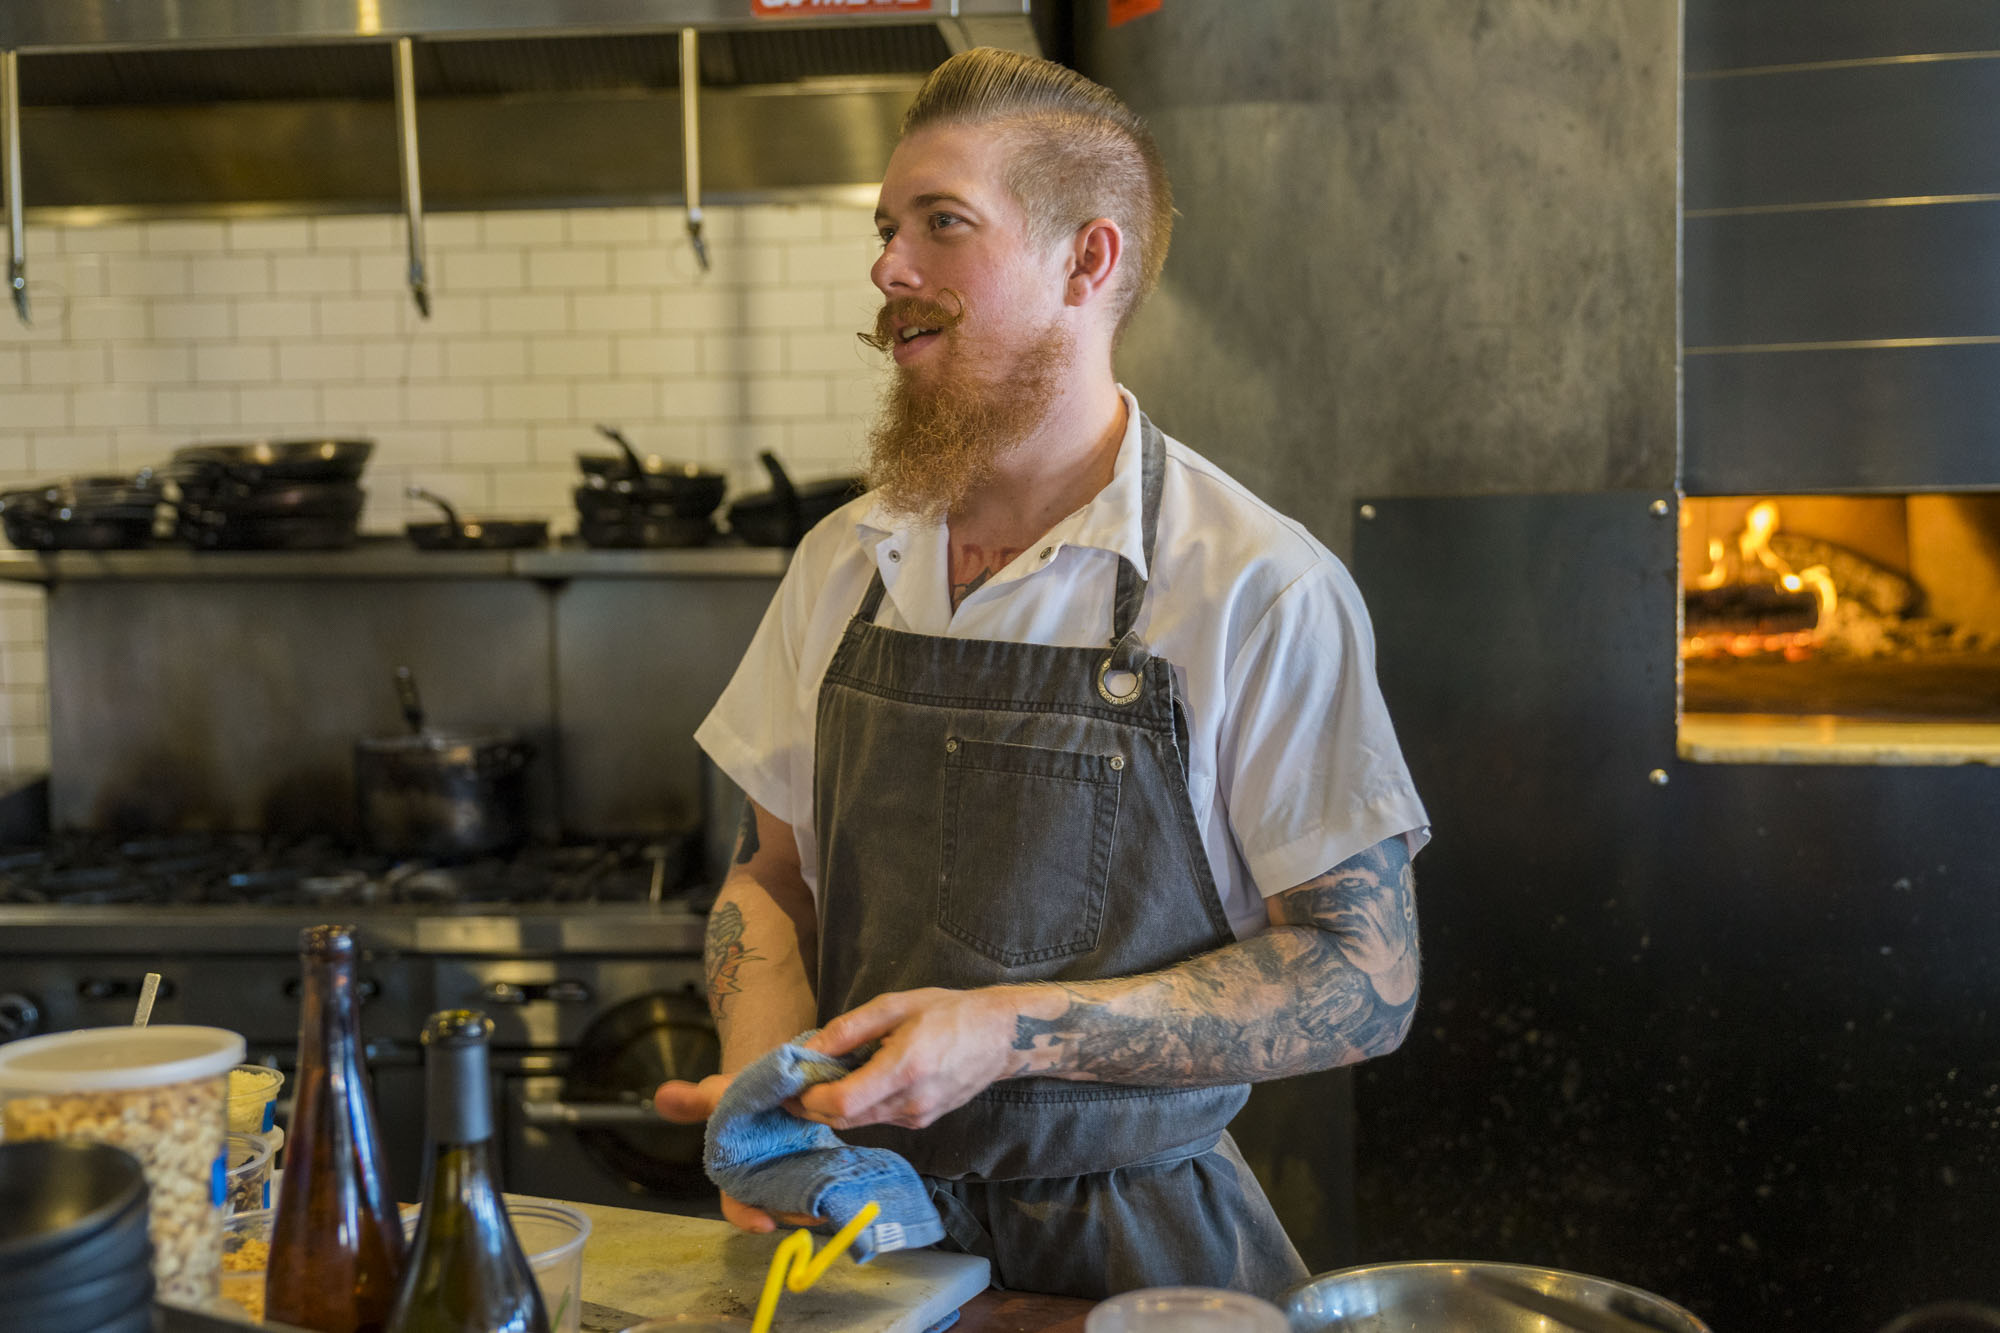 Westward's chef has tattoos and an awesome mustache.